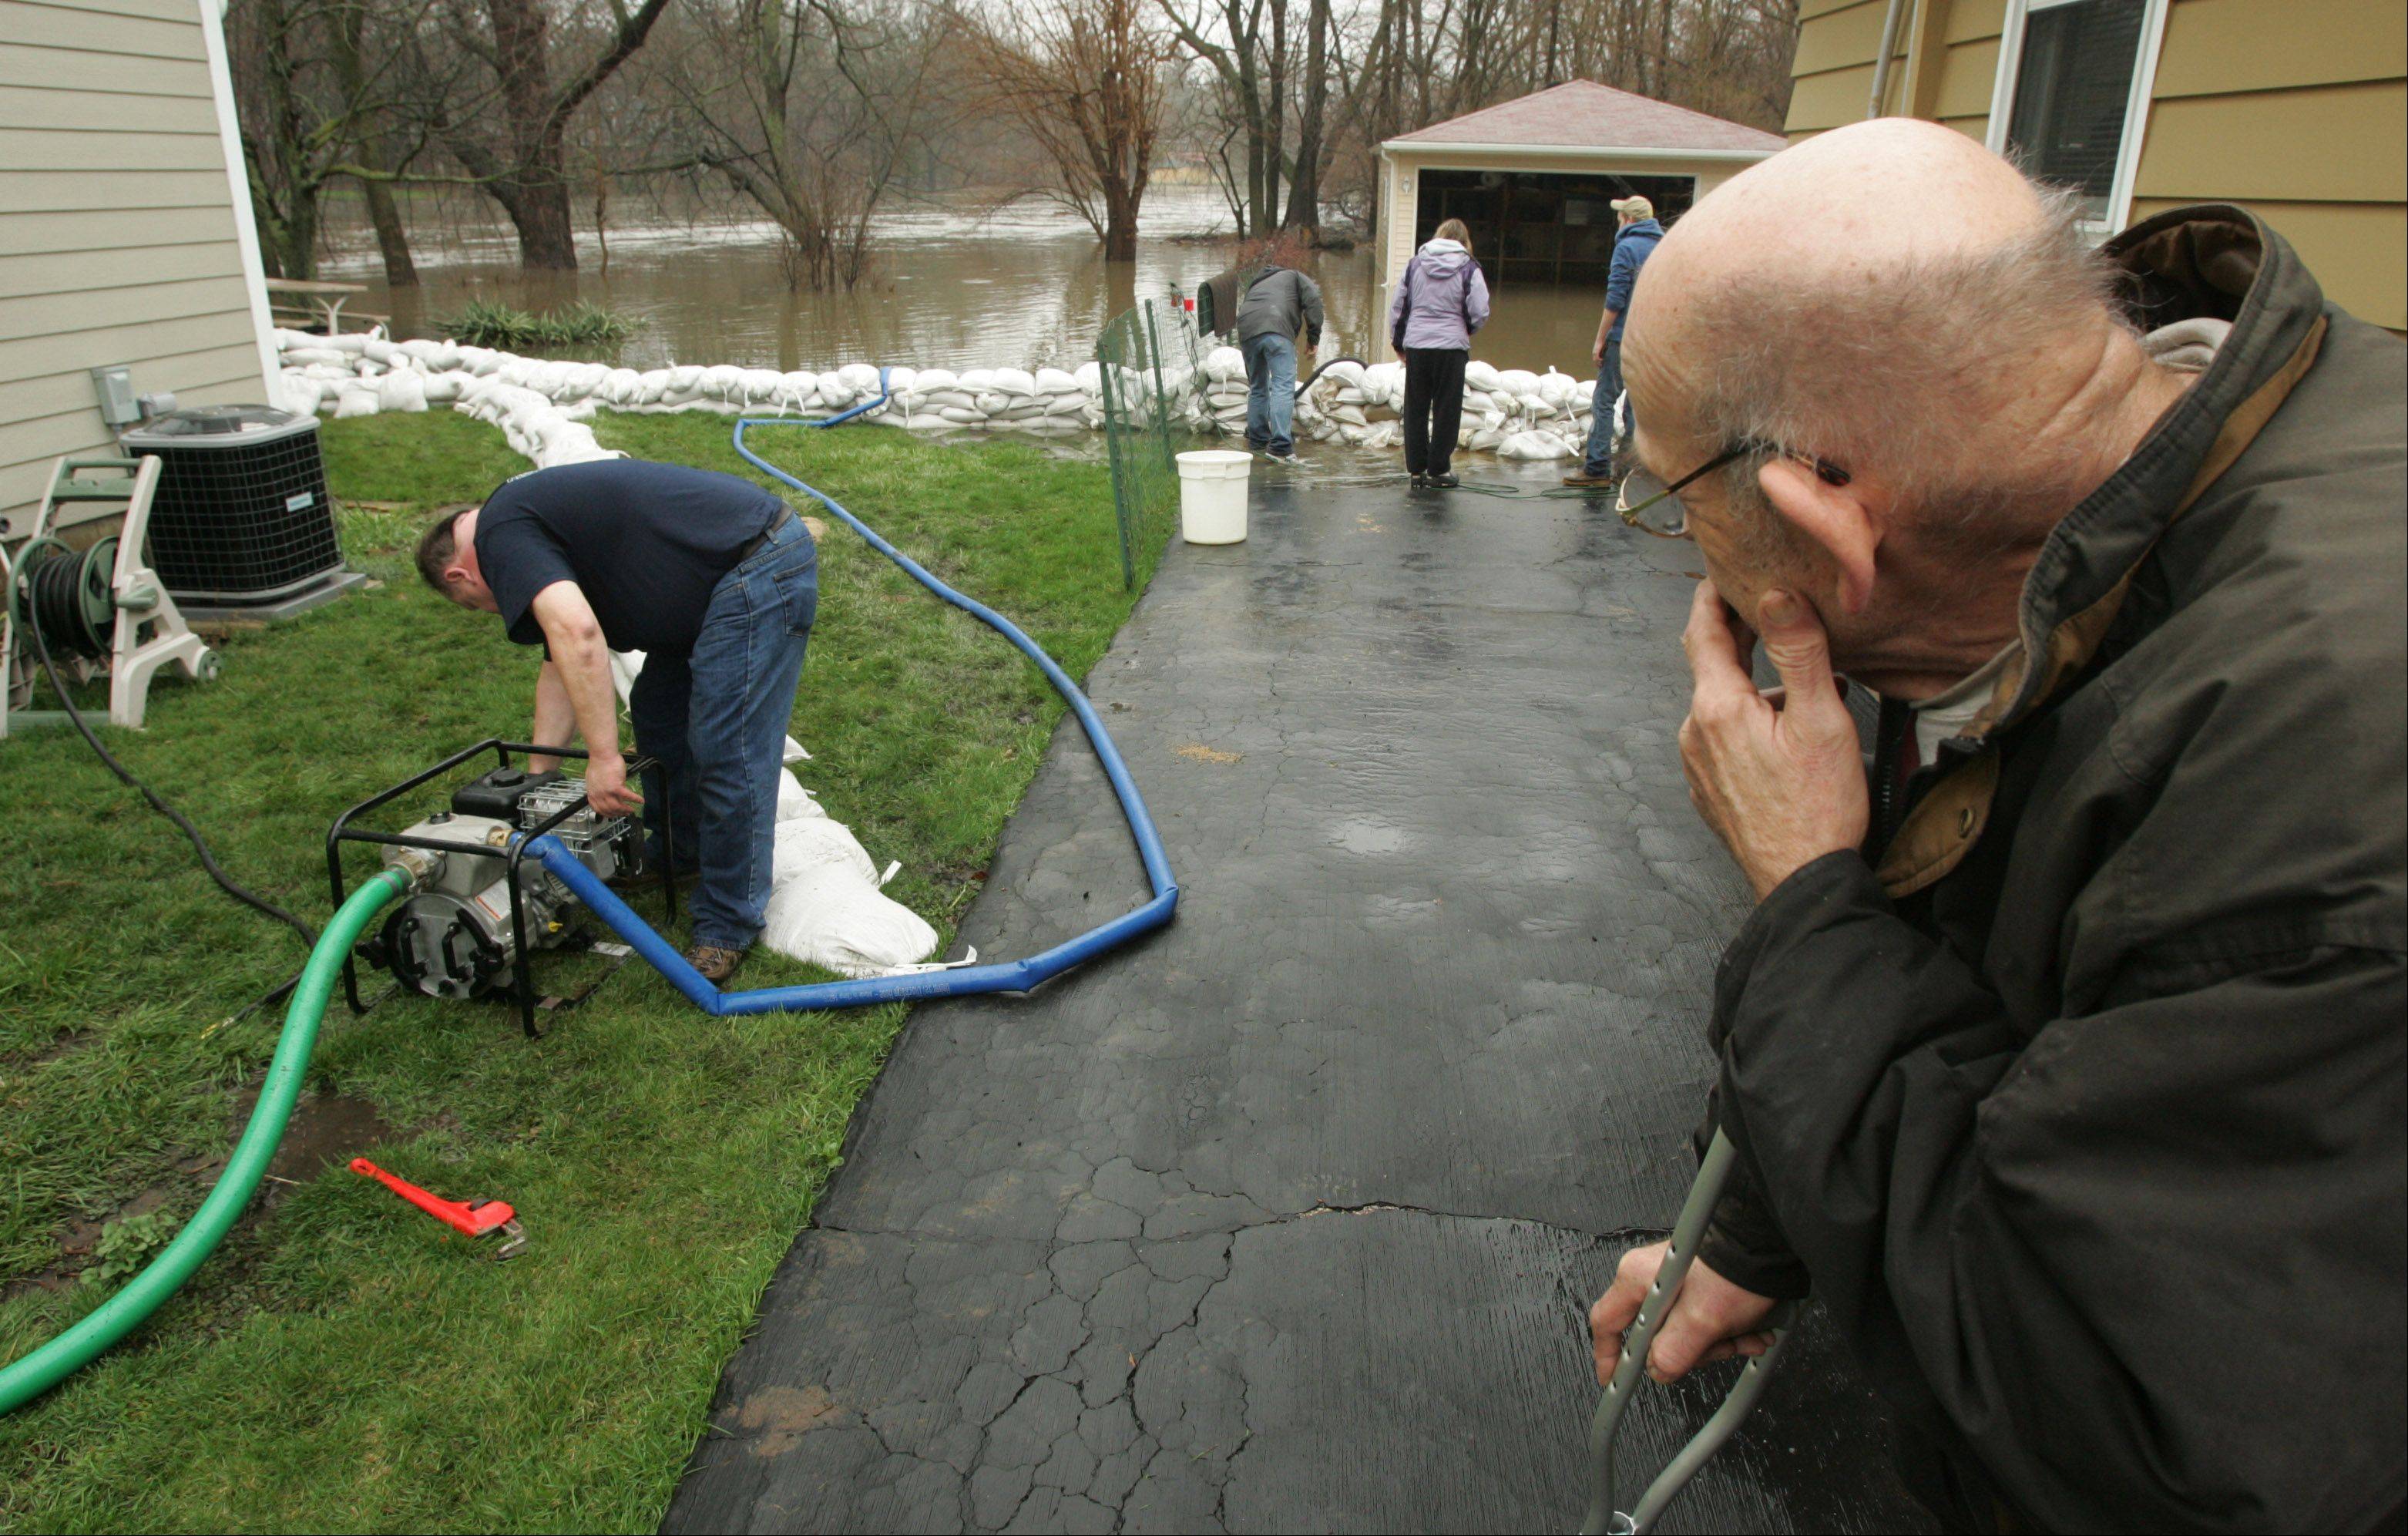 Algonquin resident Roger Baumgartner watches as his neighbor Tony Angarola gets a pump fired up to get water out of his crawl space Thursday morning along Willow Street near the Fox River.